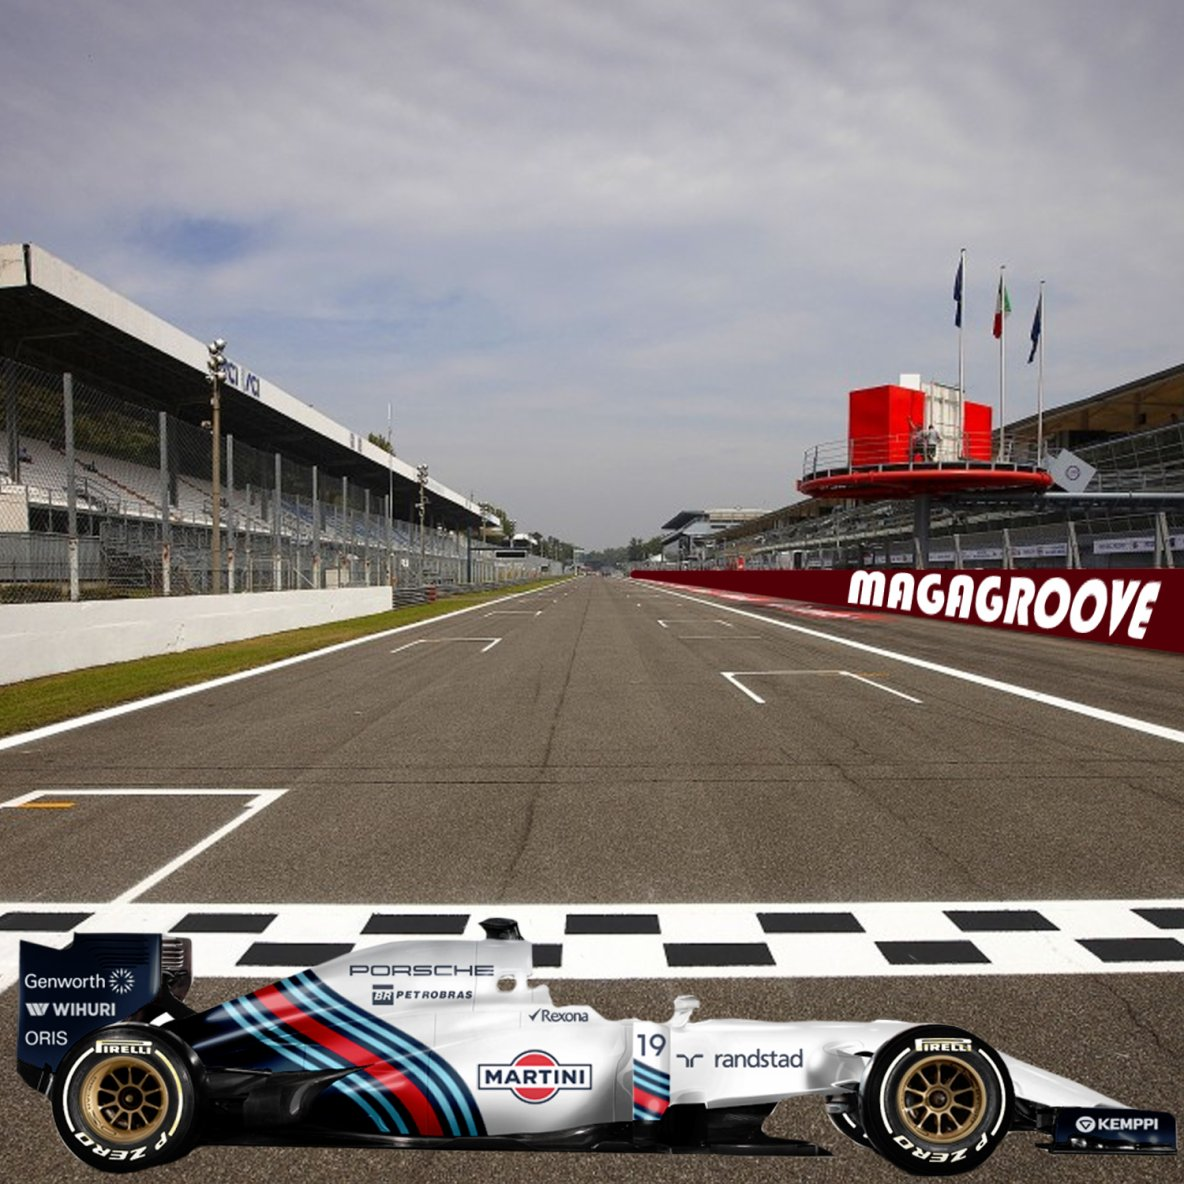 MagaGroove75 & Williams Racing F1 !!